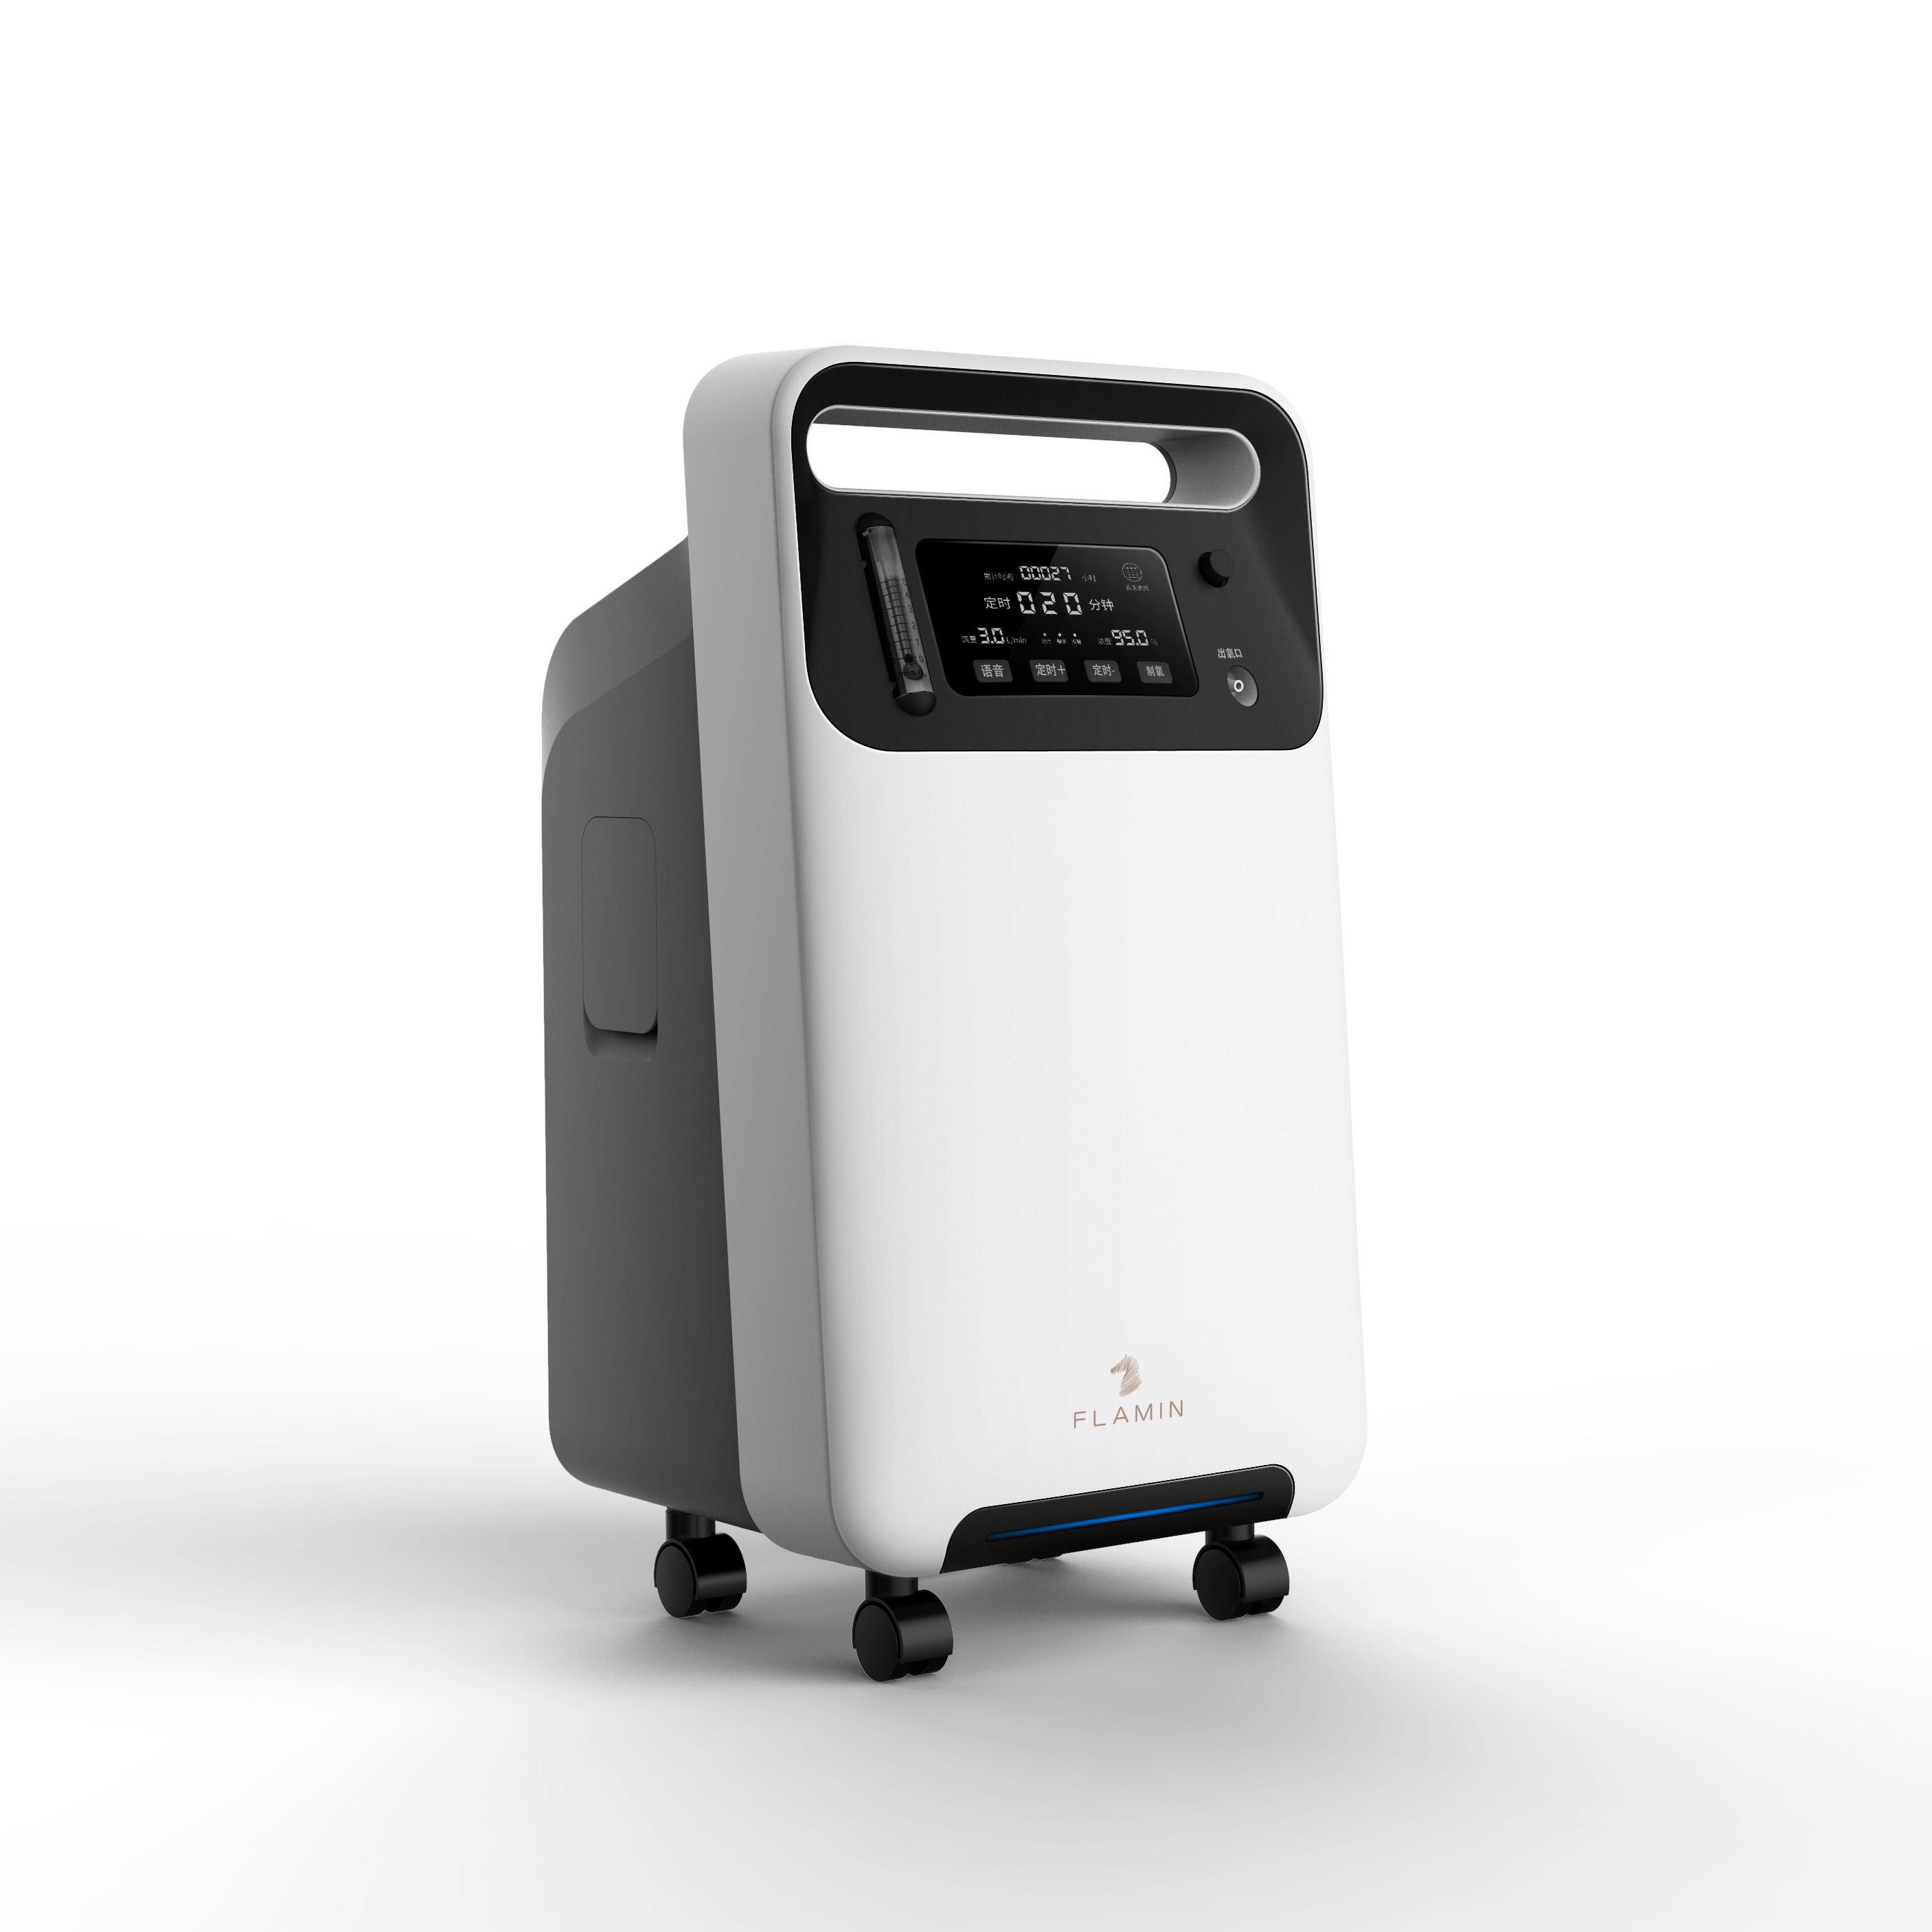 Big Screen Digital Oxygen Concentrator At Home Device